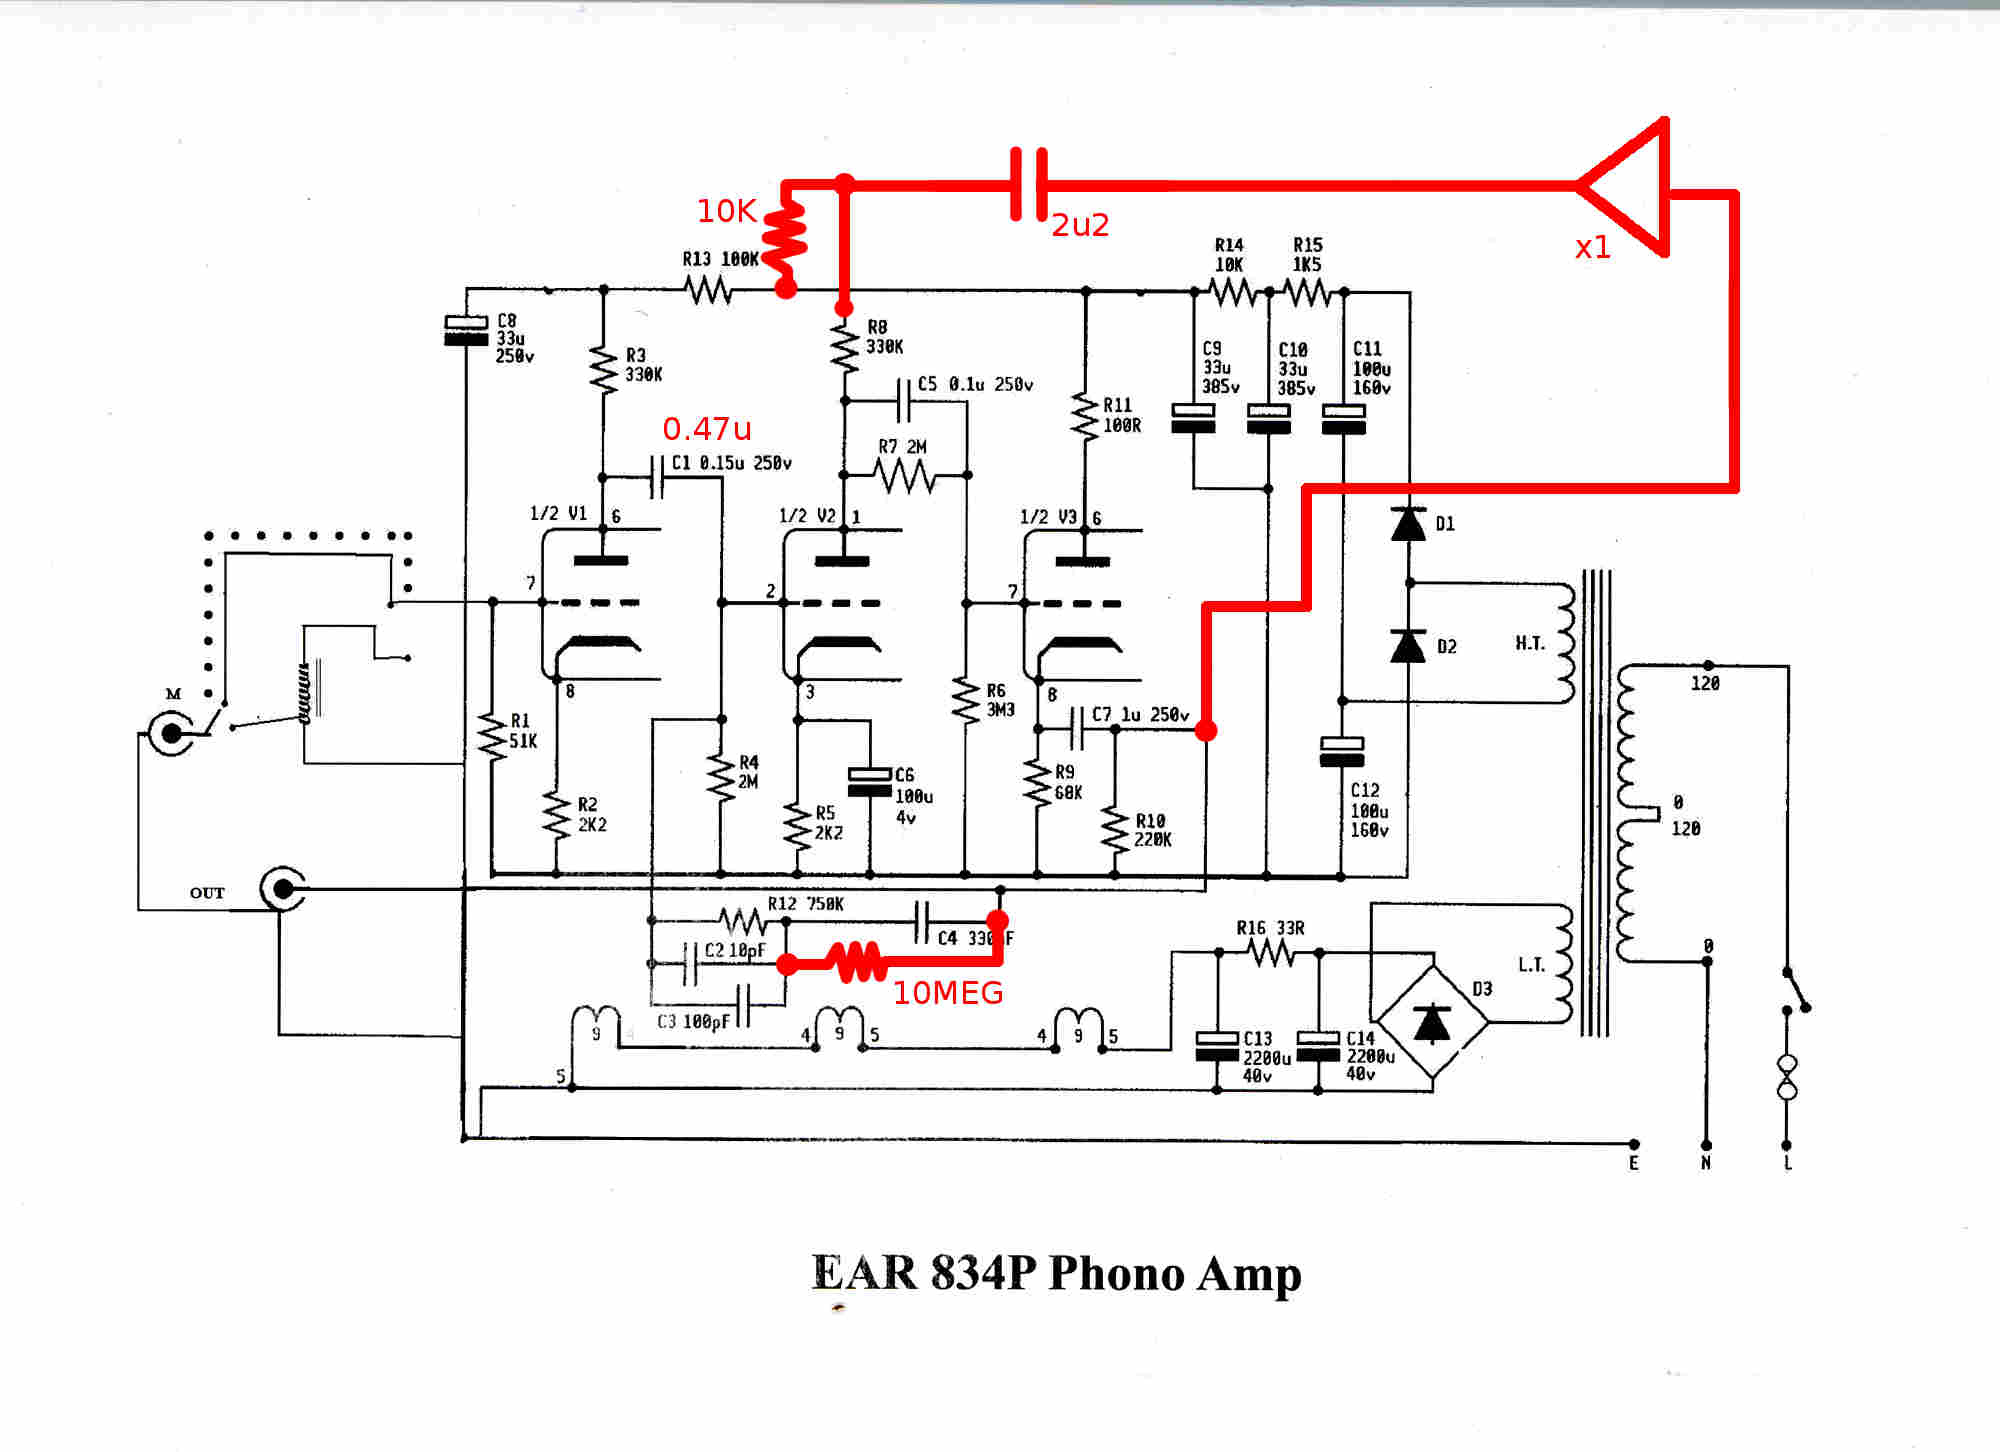 1174d1386549955 heretical 834p mods ear 834p hm hss wiring diagram 8 on hss wiring diagram